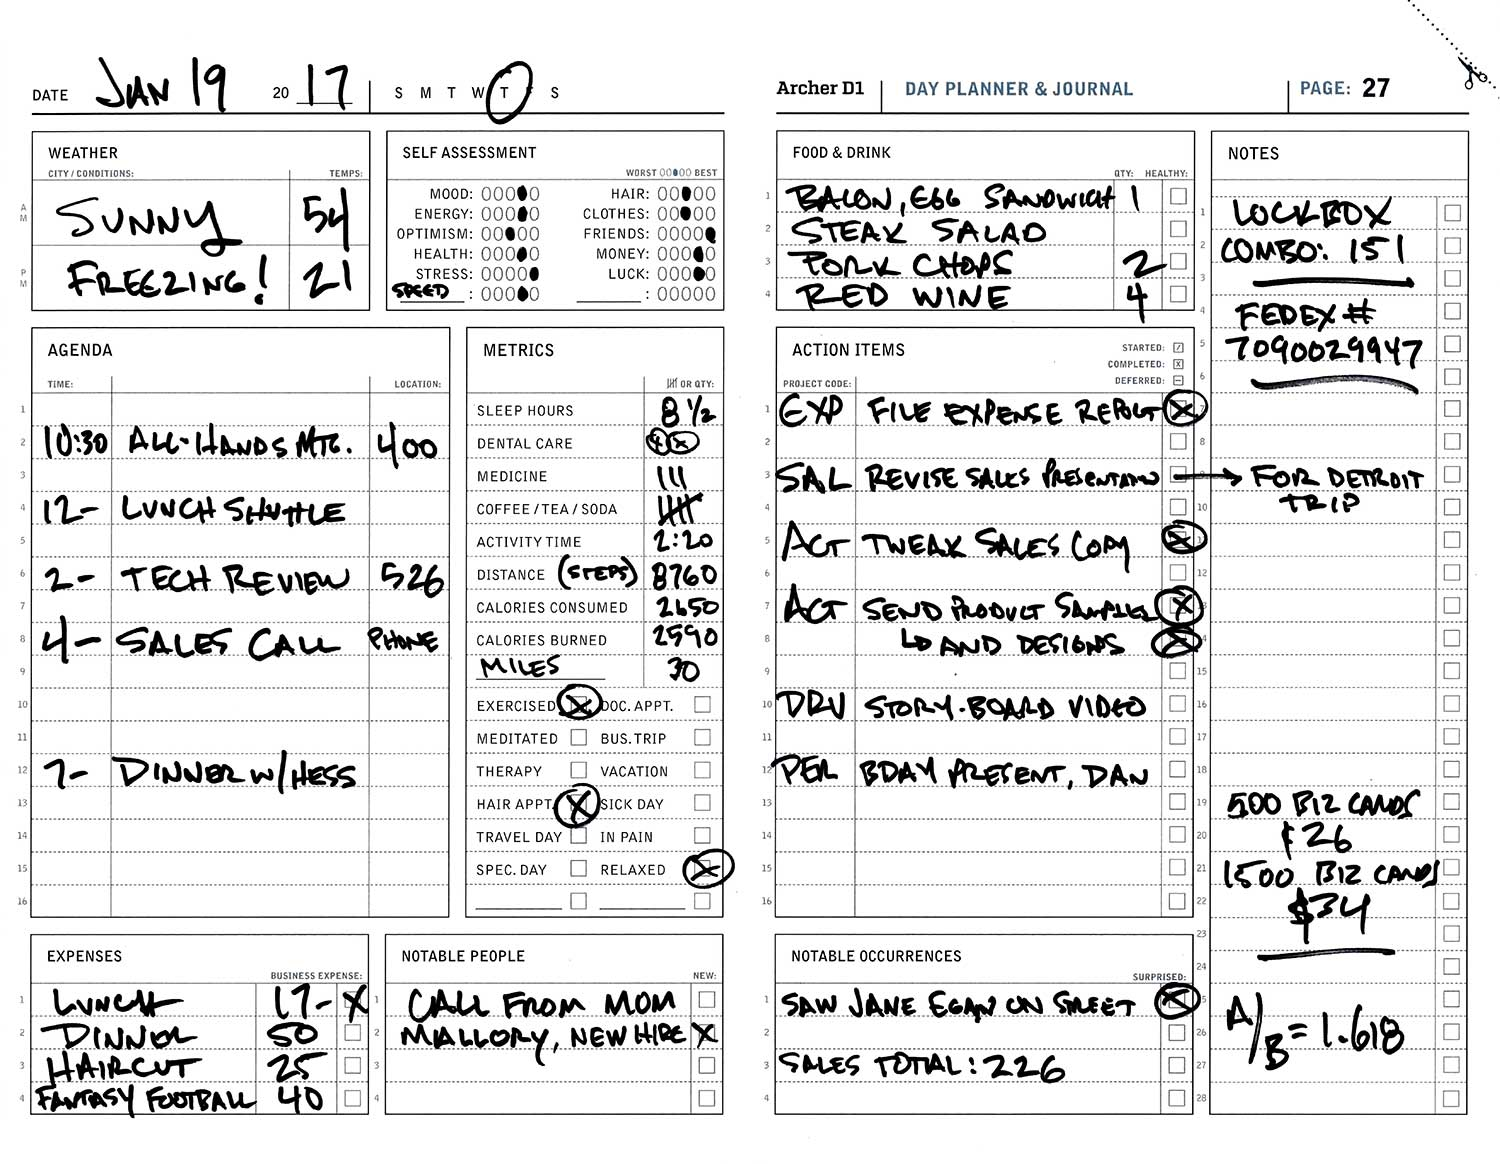 Archer D1 Day Planner — The Active System Co.